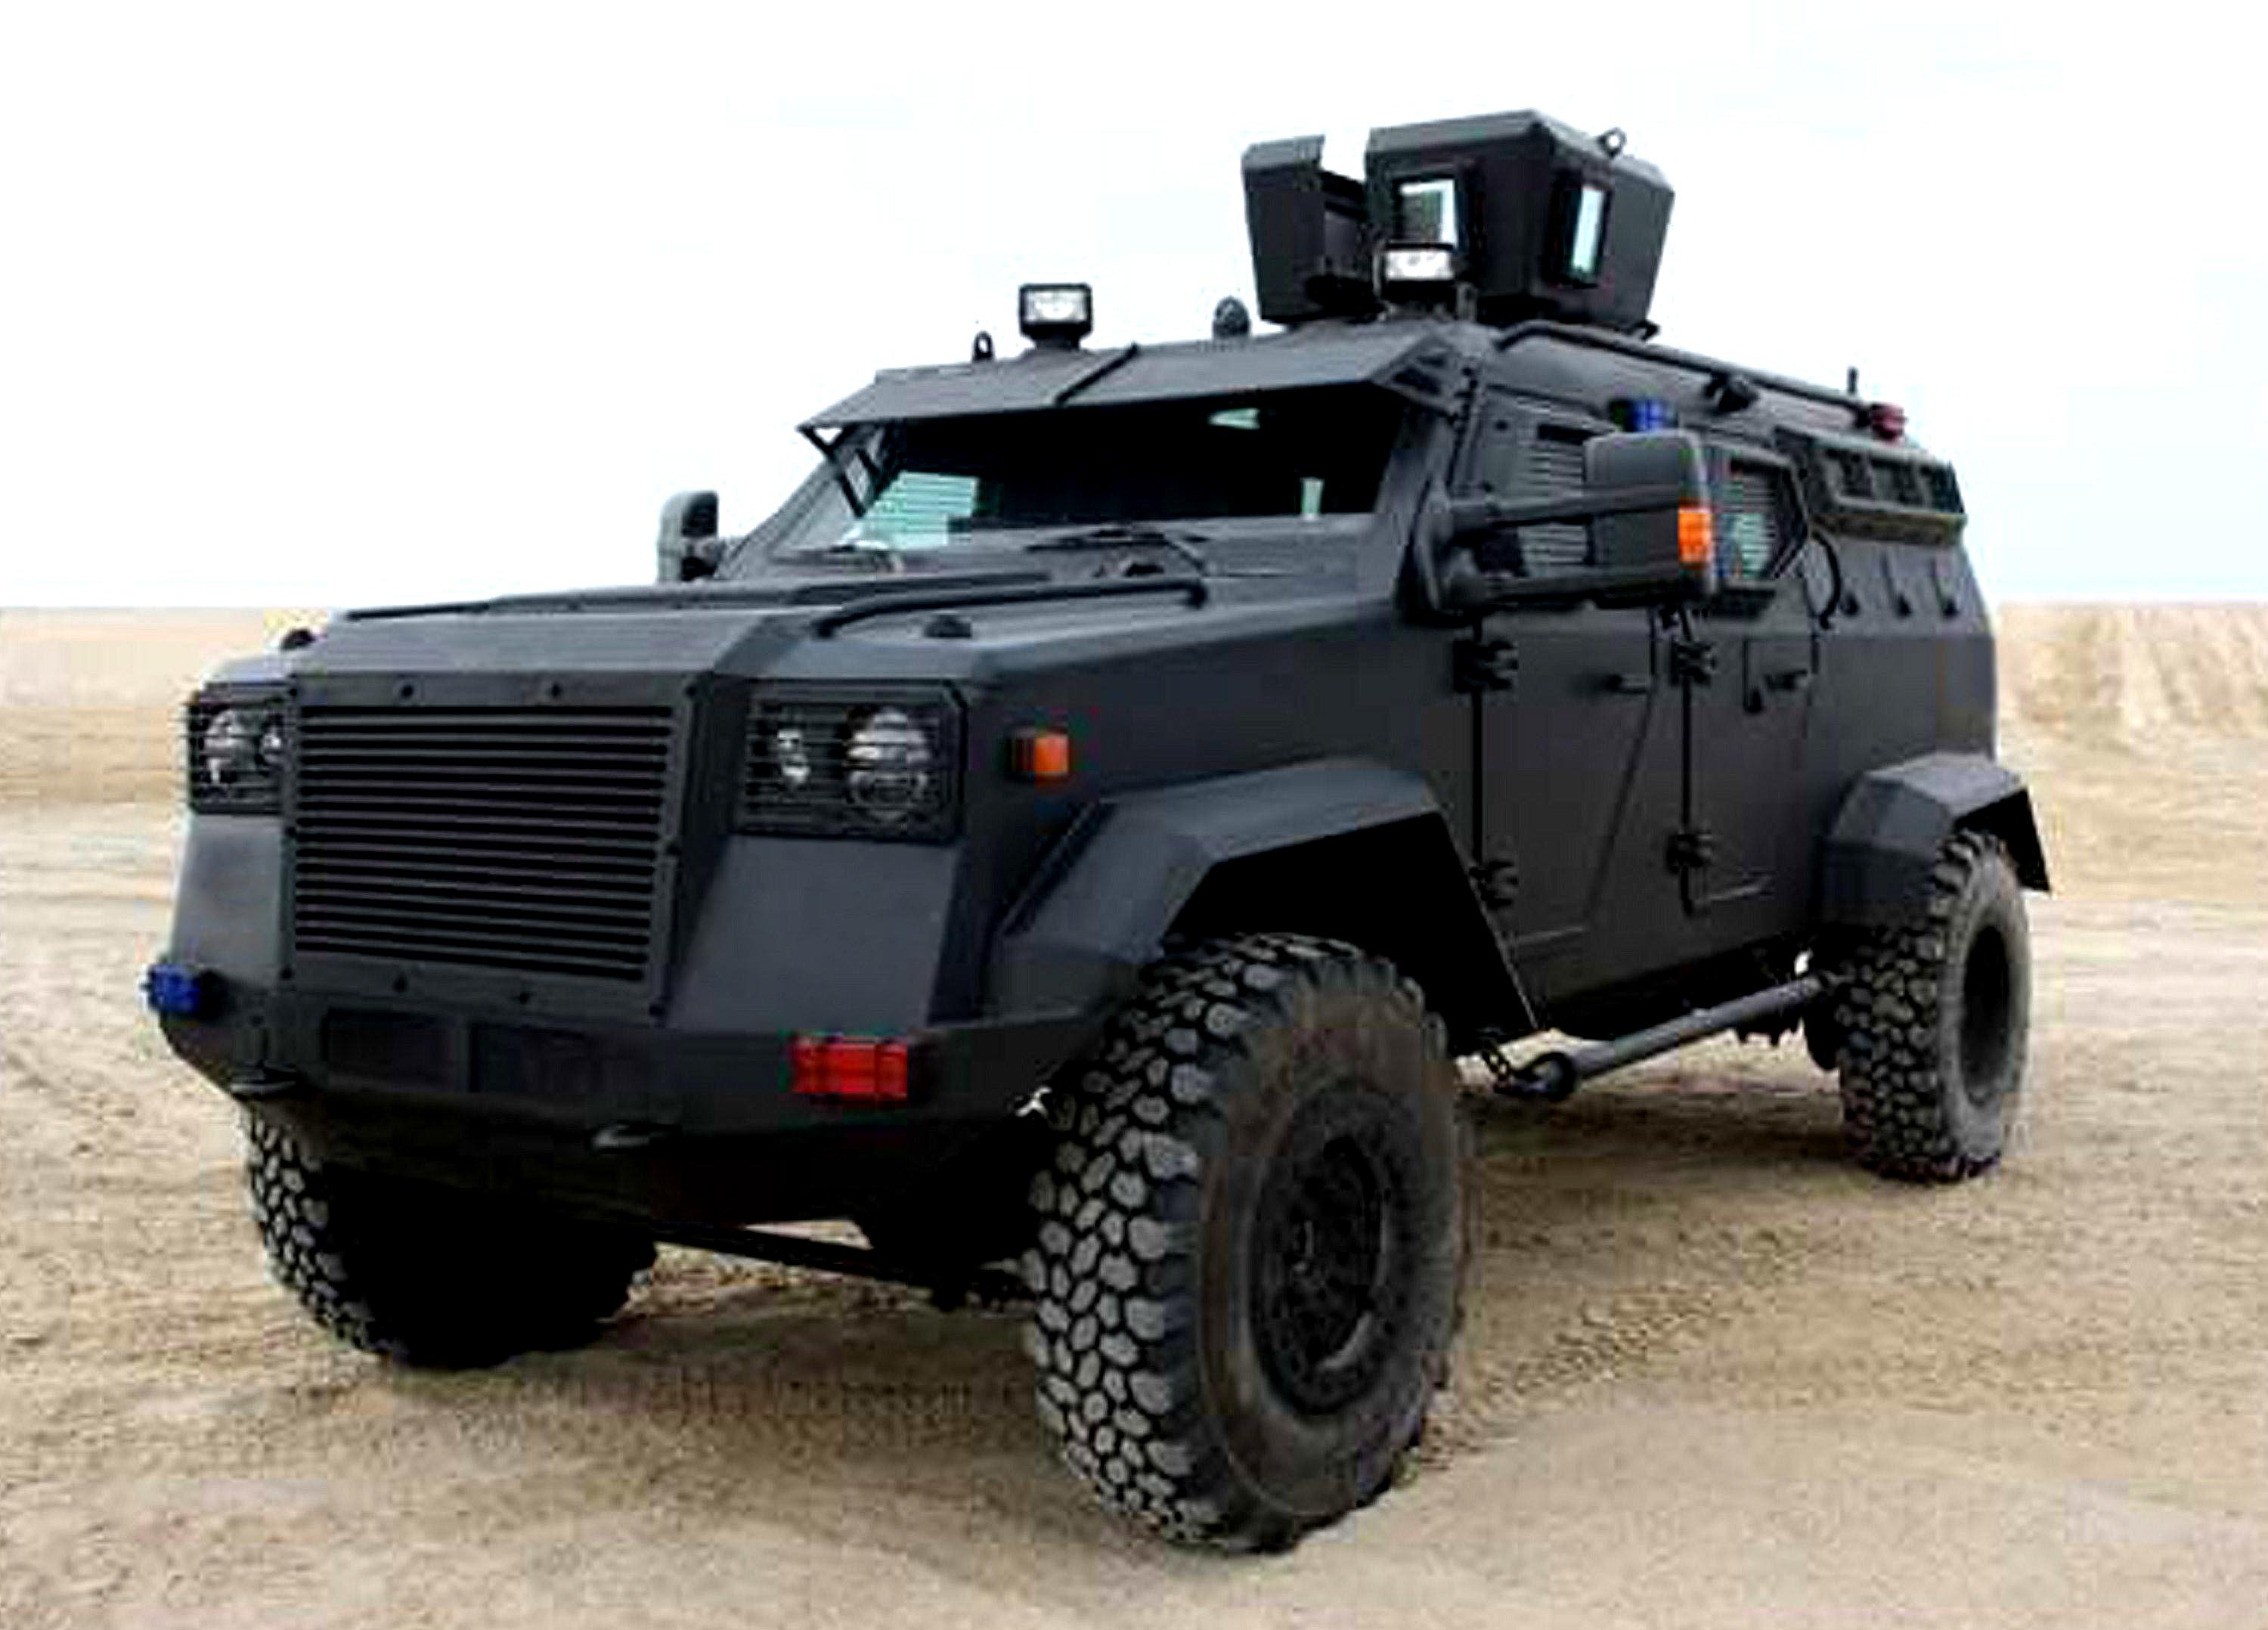 Armored Personnel Carrier 10 furthermore Exelon Logo   Transparent also 76 Series Landcruiser likewise Next Gen Bmw 3 Series Renderings Show A Radical Design Change additionally Volvo Shifts S90 Sedan Production To China. on electric vehicles